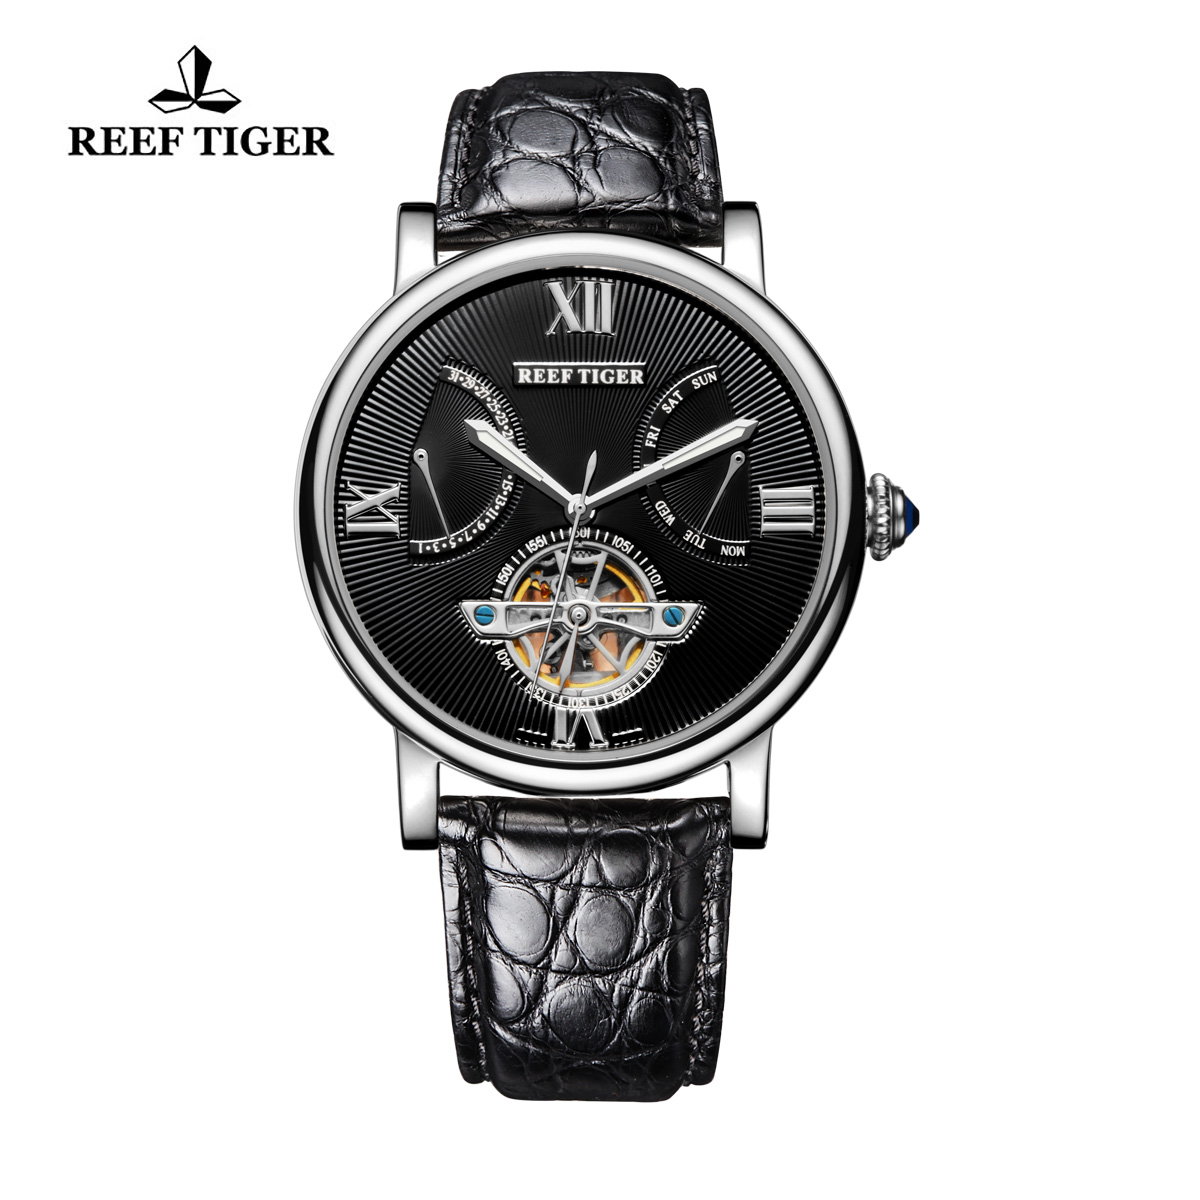 Reef Tiger Carved Spiral Tourbillon Watch with Day Date Steel Black Dial Alligator Strap RGA191